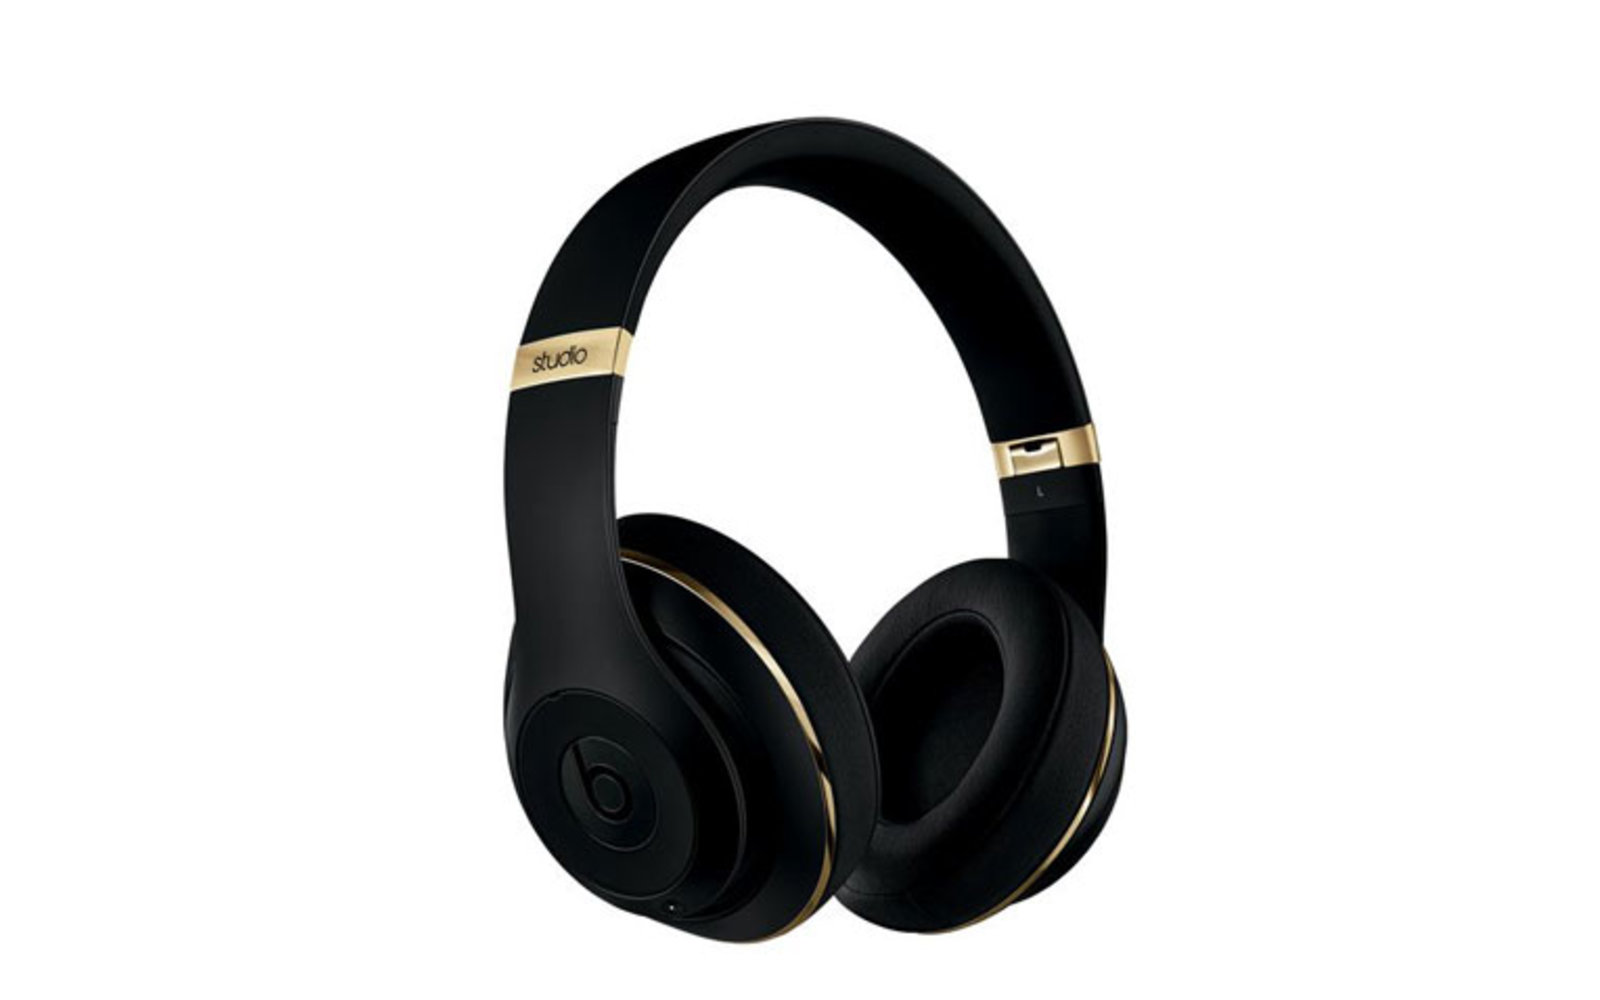 alexander-wang-beats-headphones